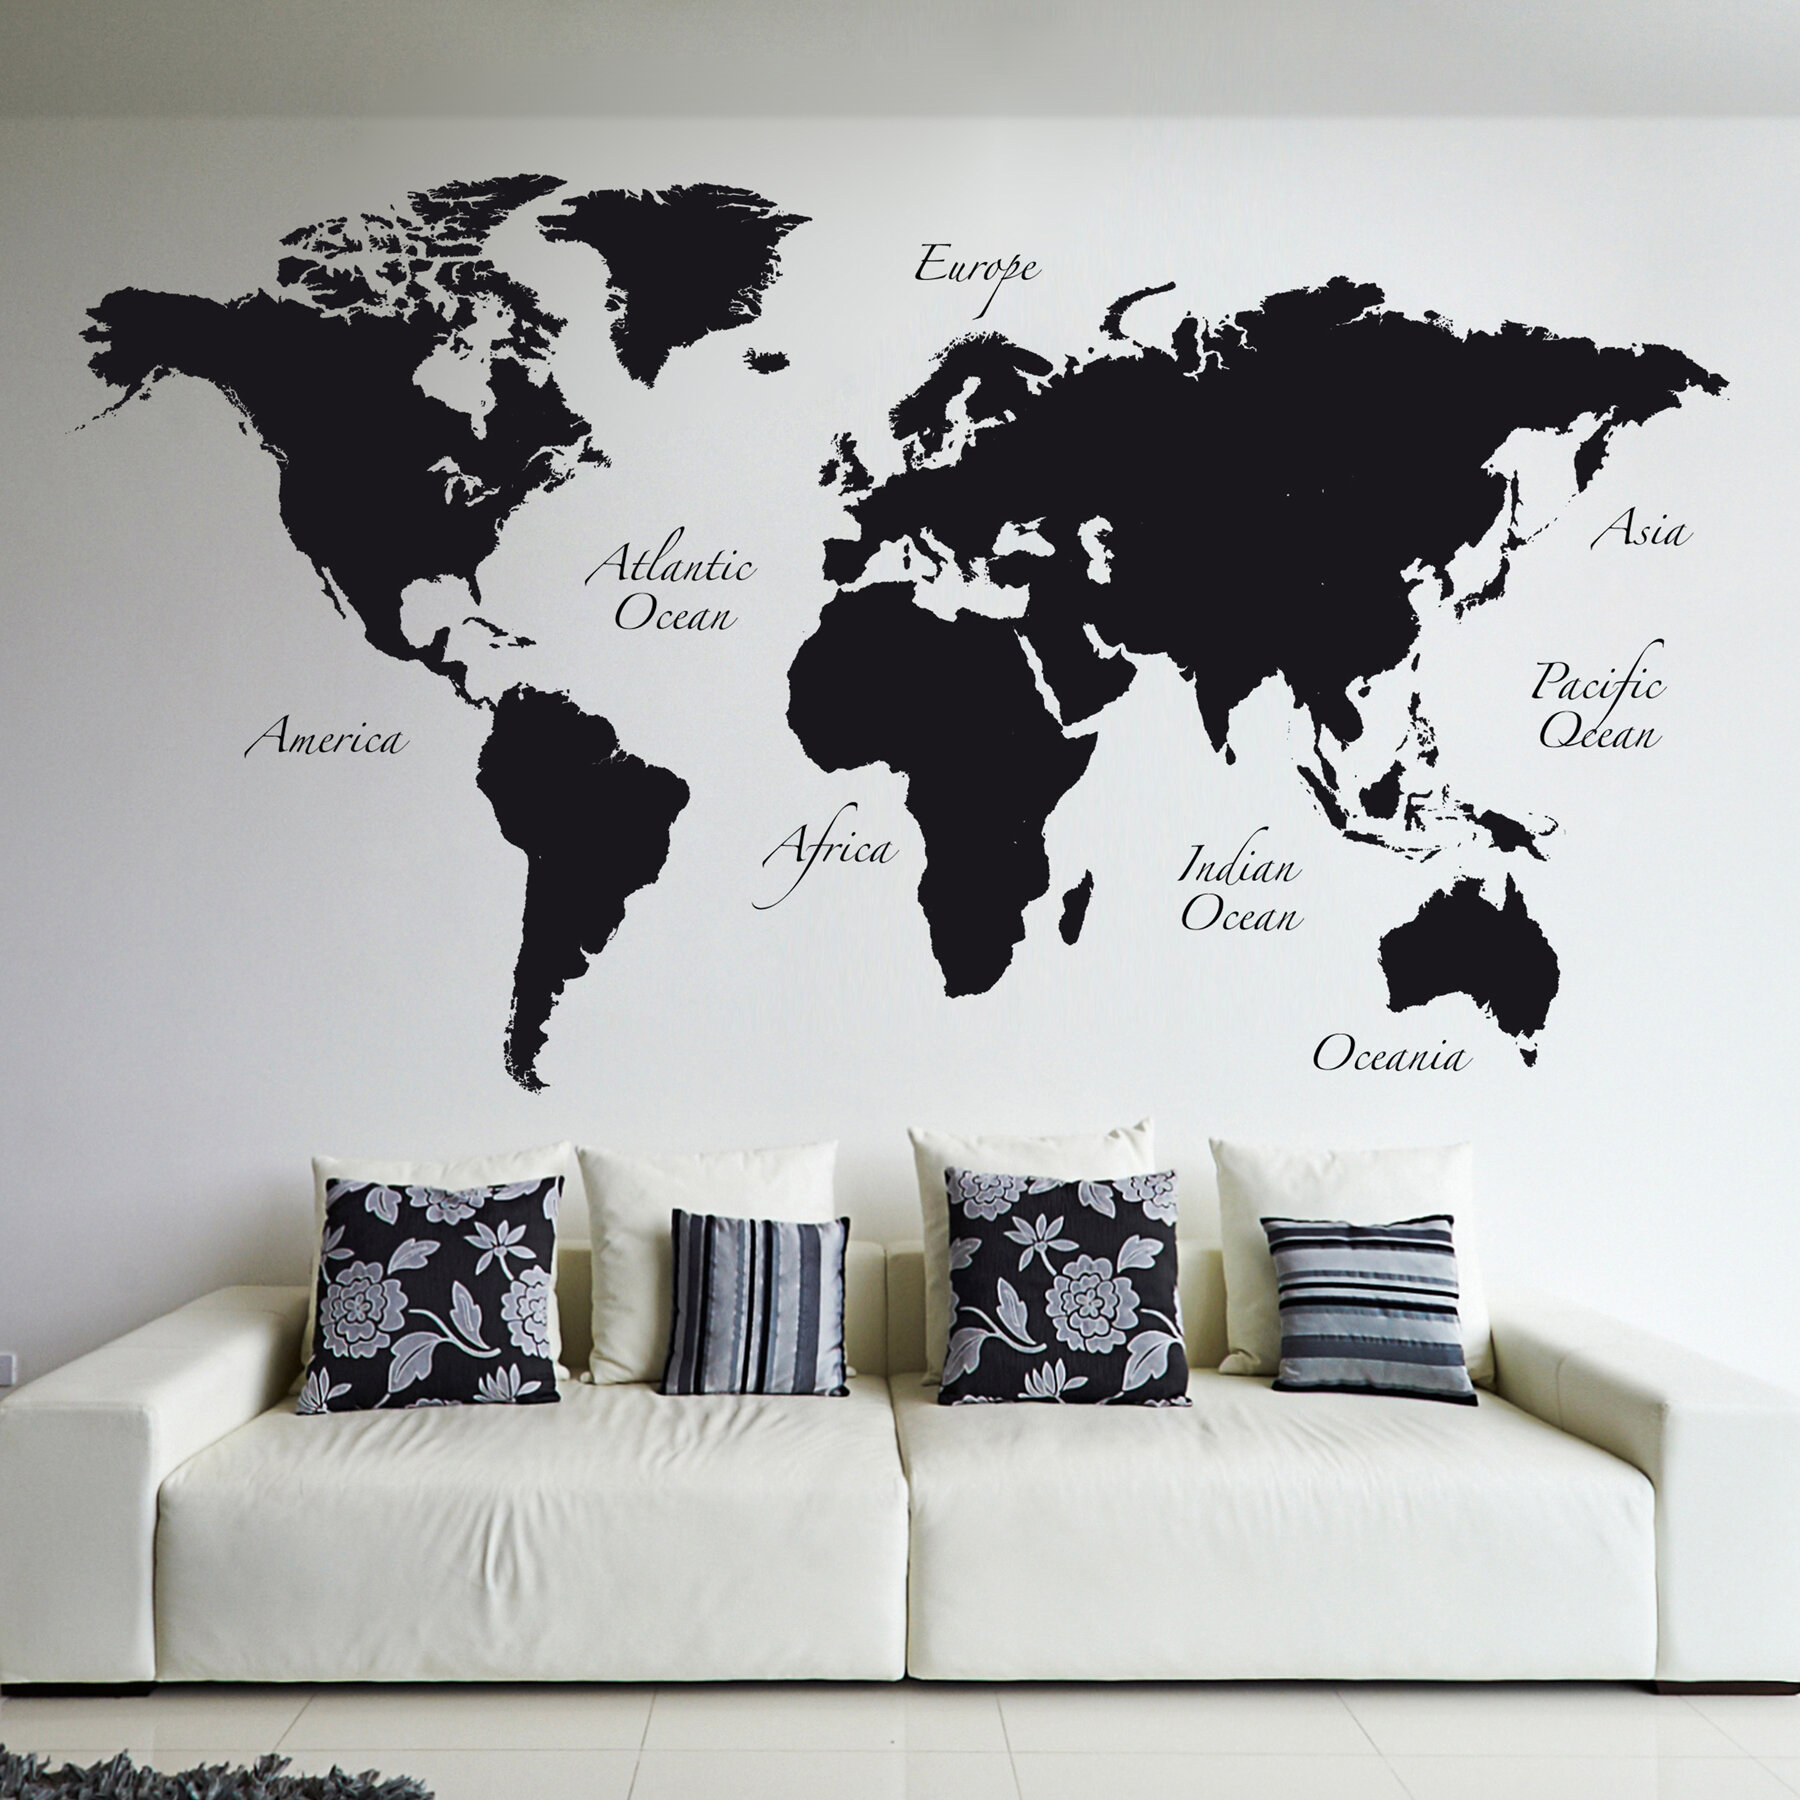 Decal Travel Wall Decals You'll Love in 2019 | Wayfair